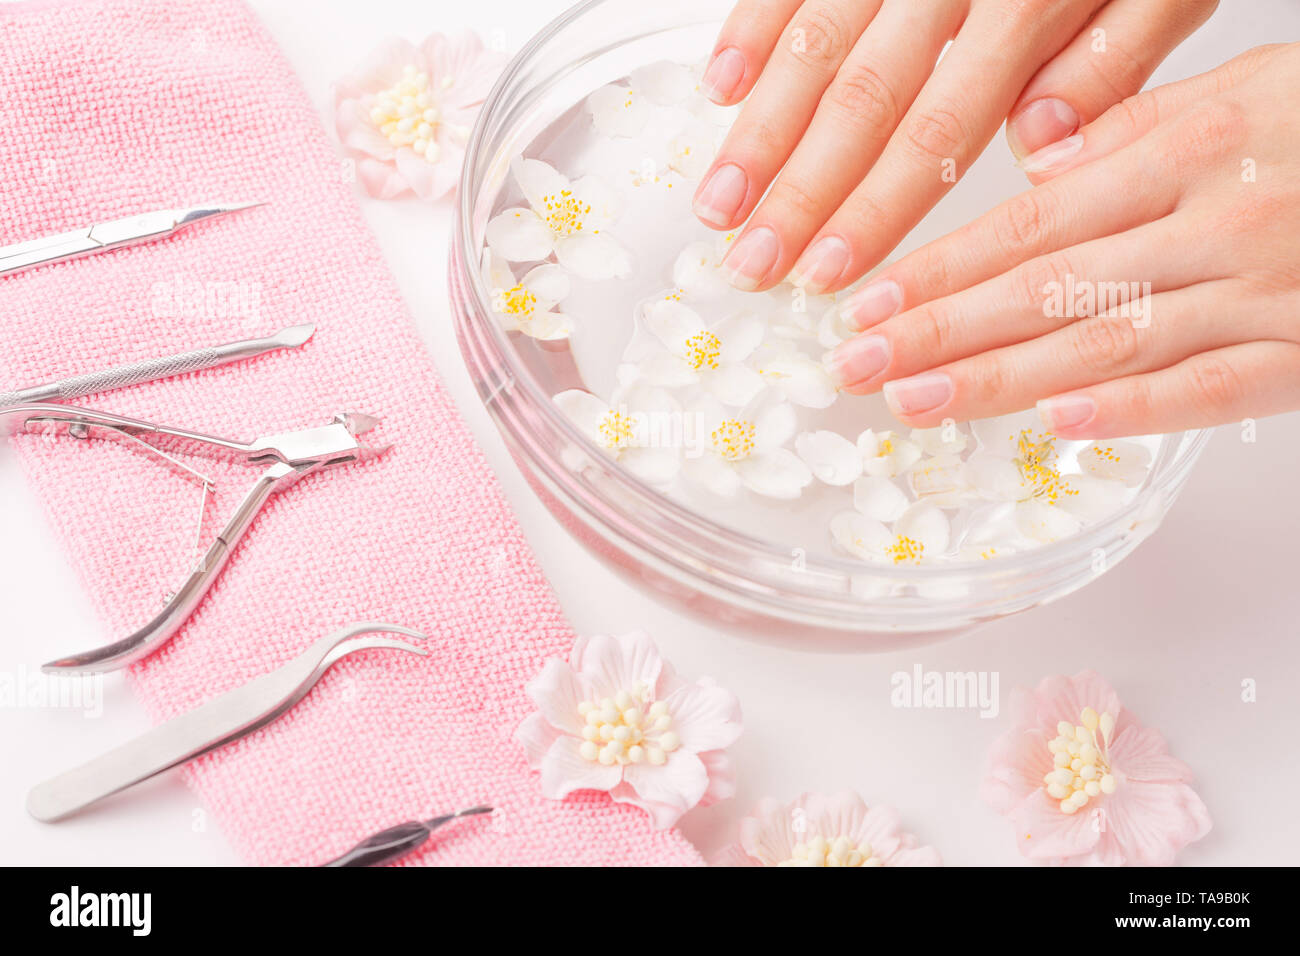 Woman hands with manicure nails and bowl with water and daisy flower. - Stock Image